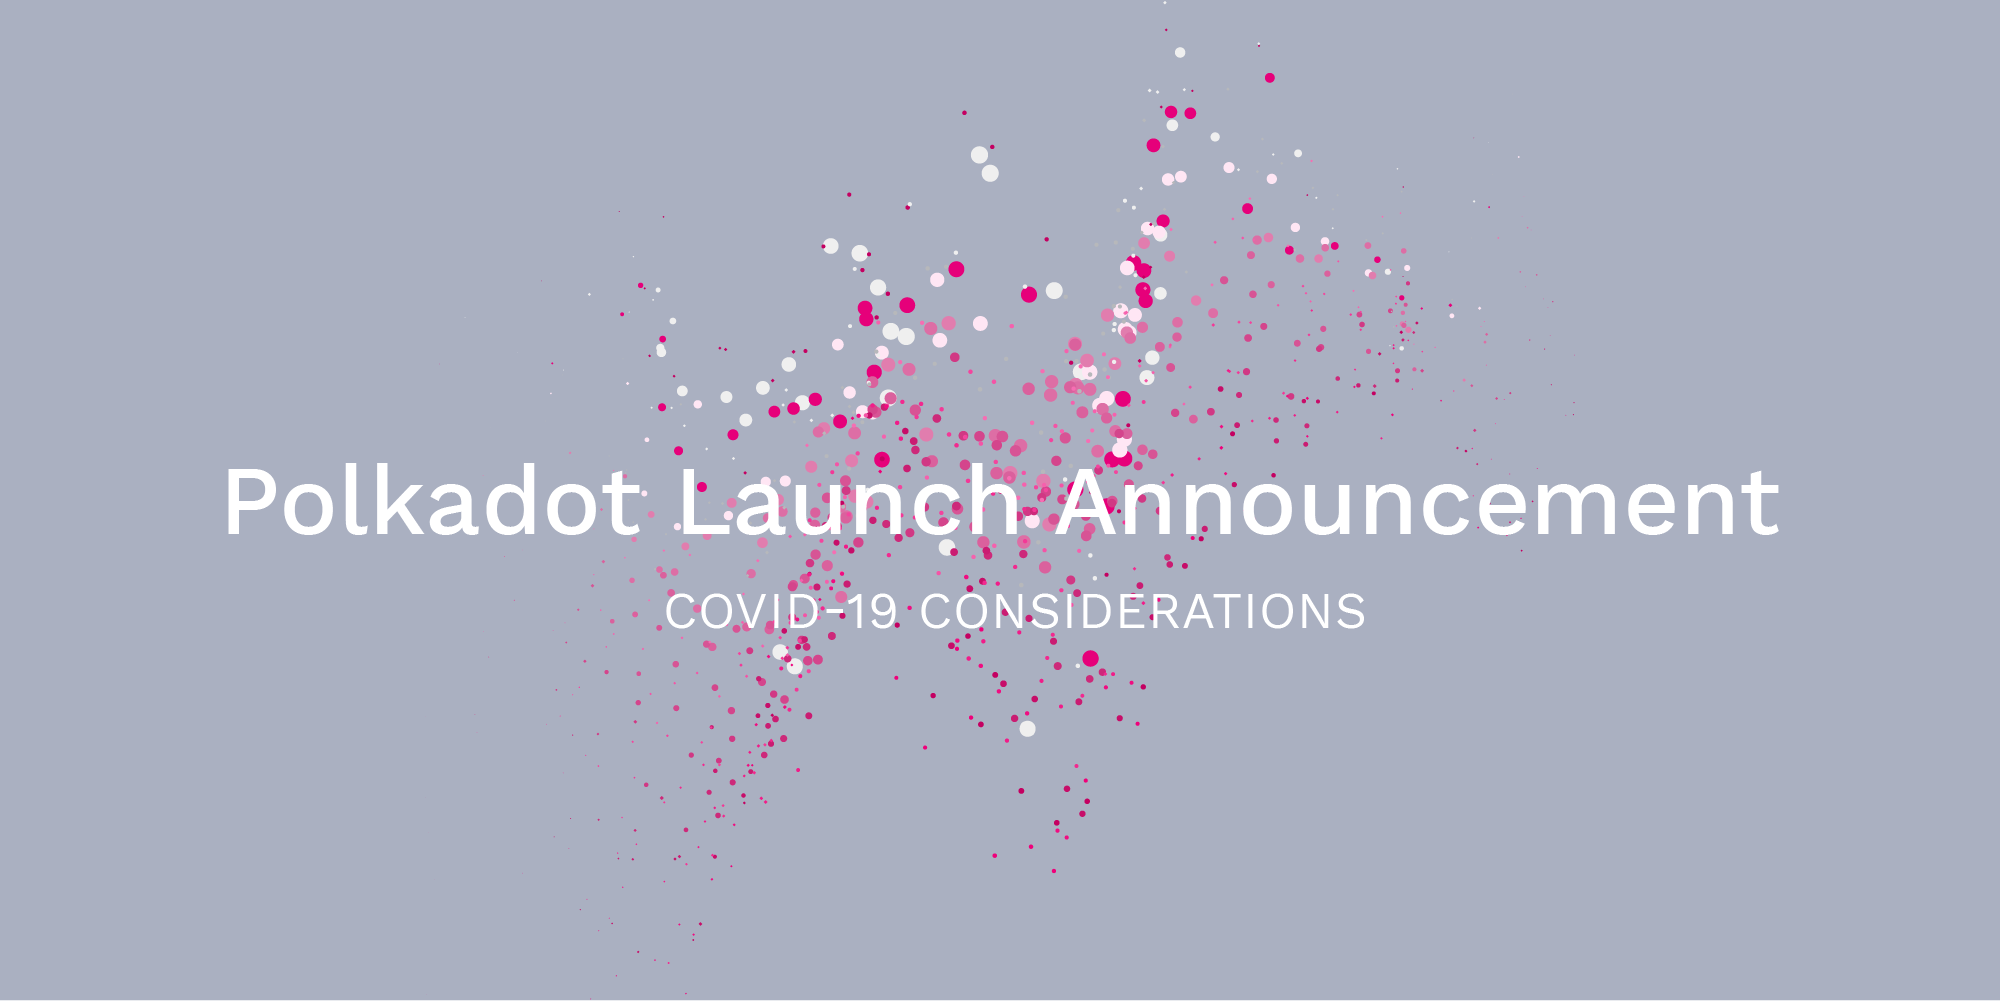 Polkadot Launch Announcement: COVID-19 Considerations